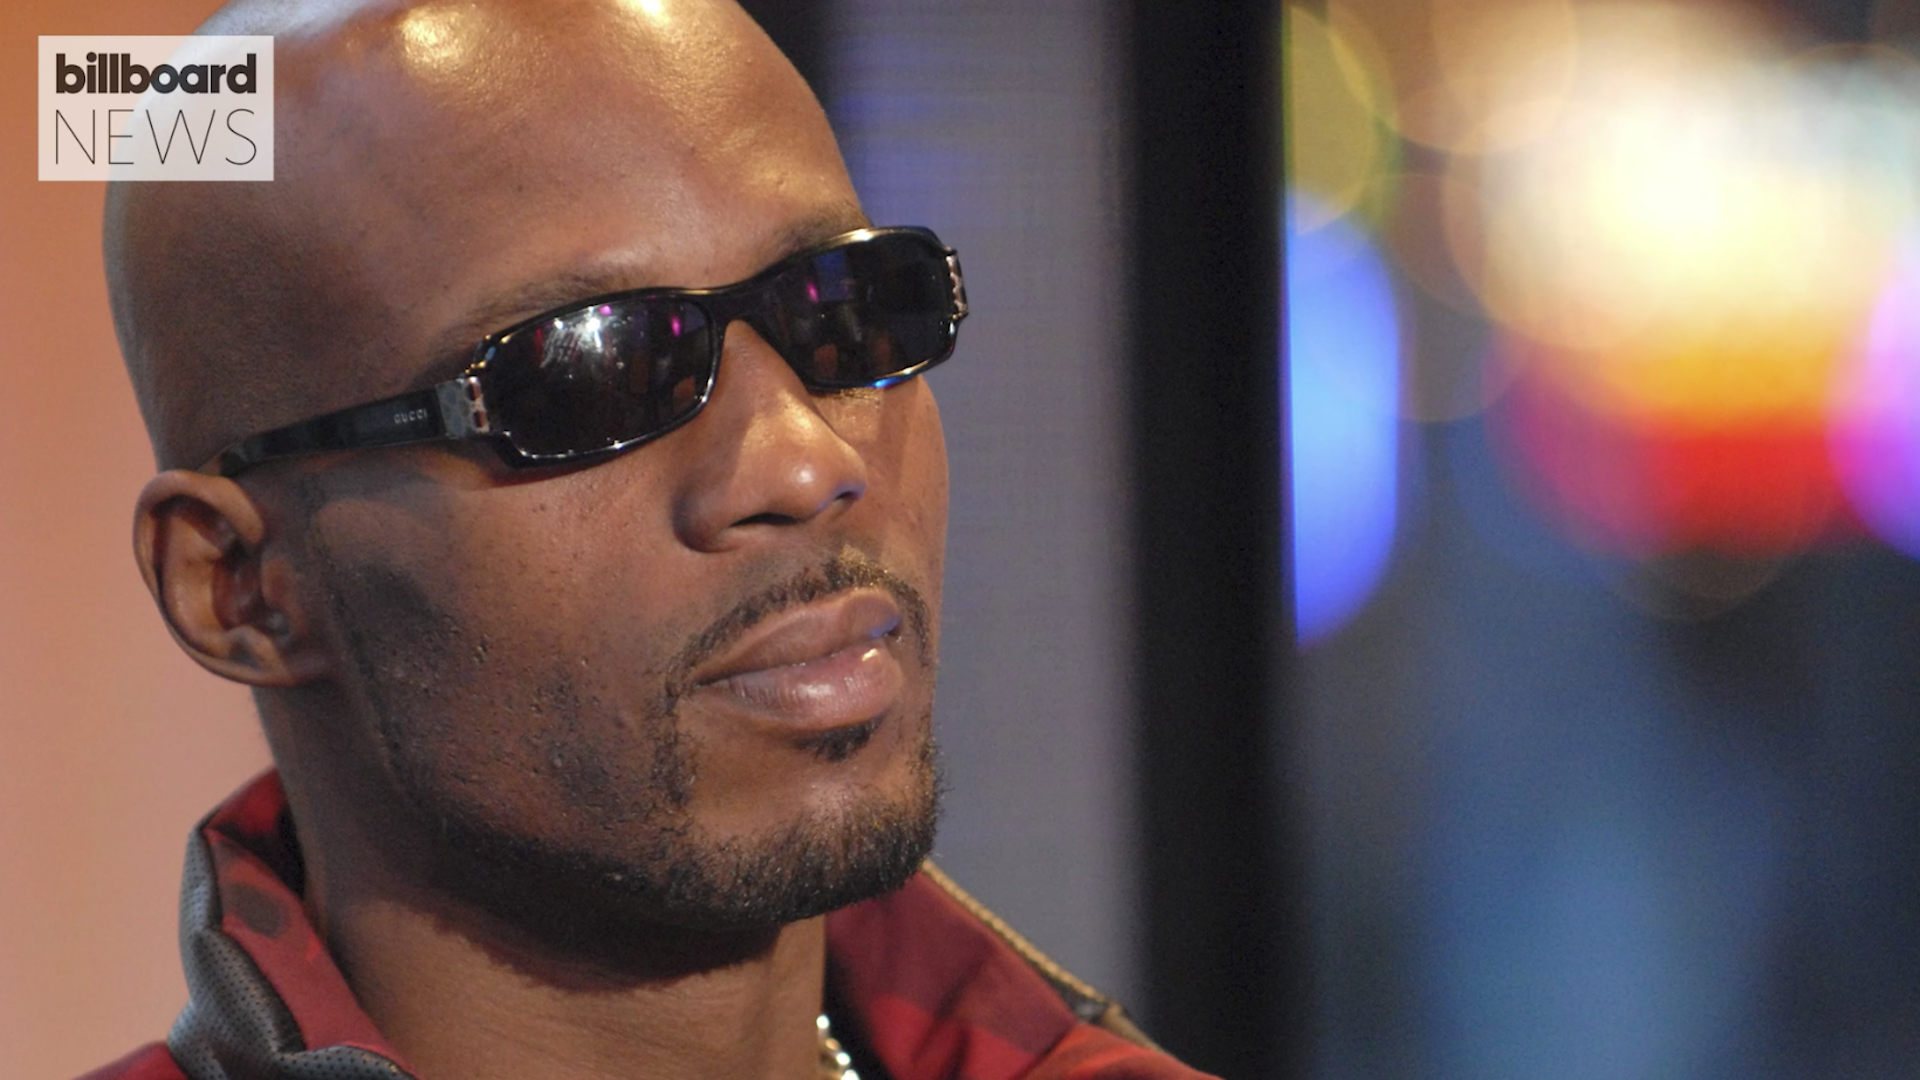 www.billboard.com: DMX, Iconic Ruff Ryders Rapper, Dies at 50